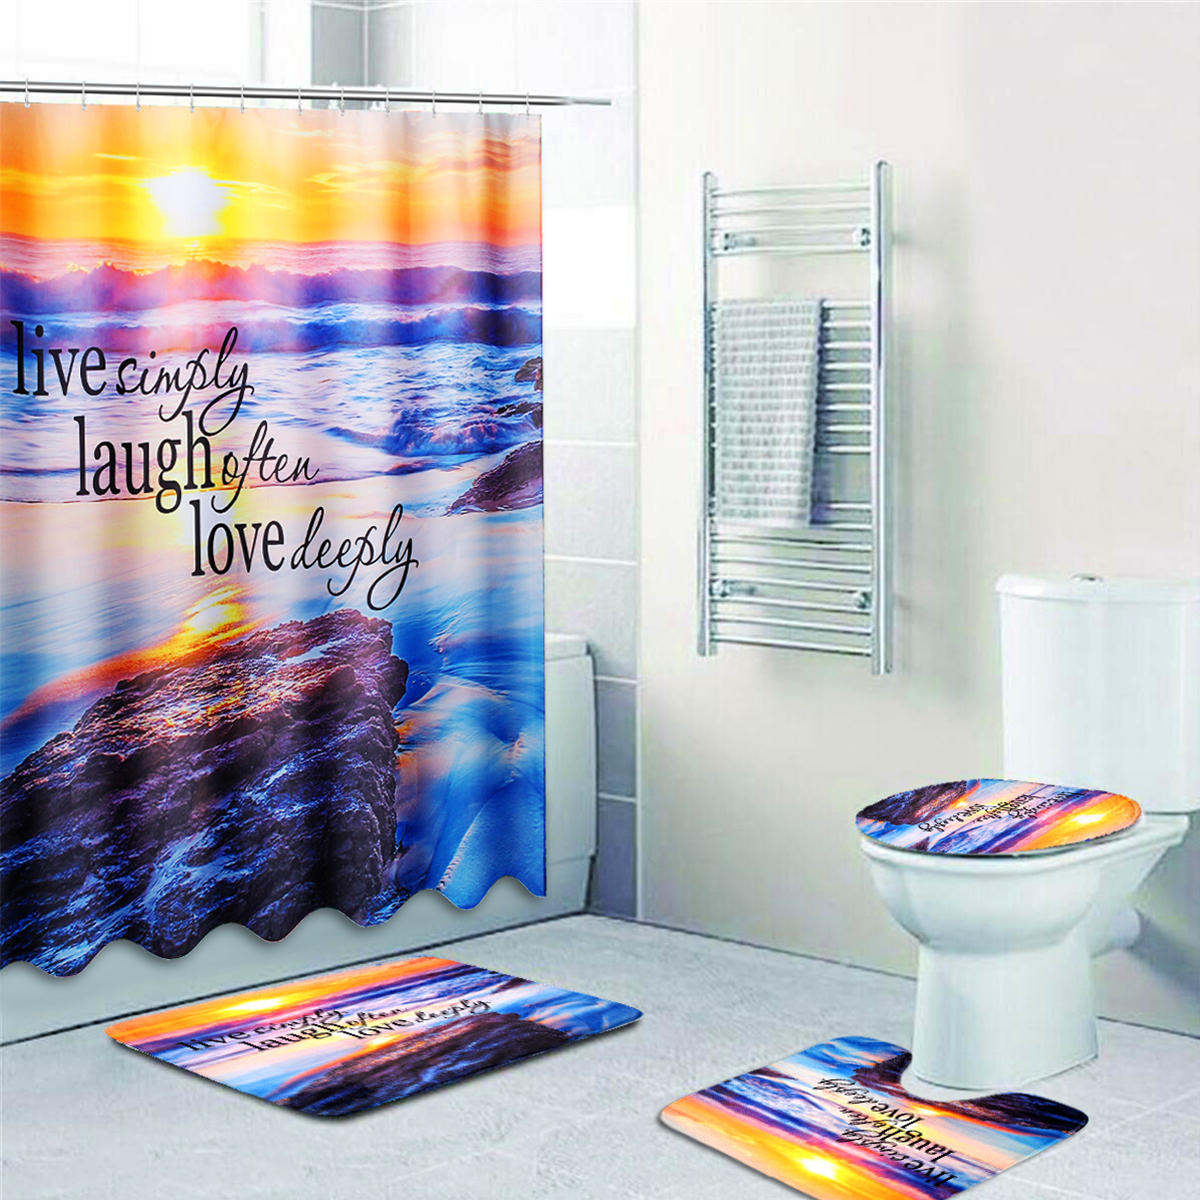 Sims 3 Badkamer Sandy Beach Waterproof Badkamer Douchegordijn Toilet Cover Mat Antislip Tapijt Set